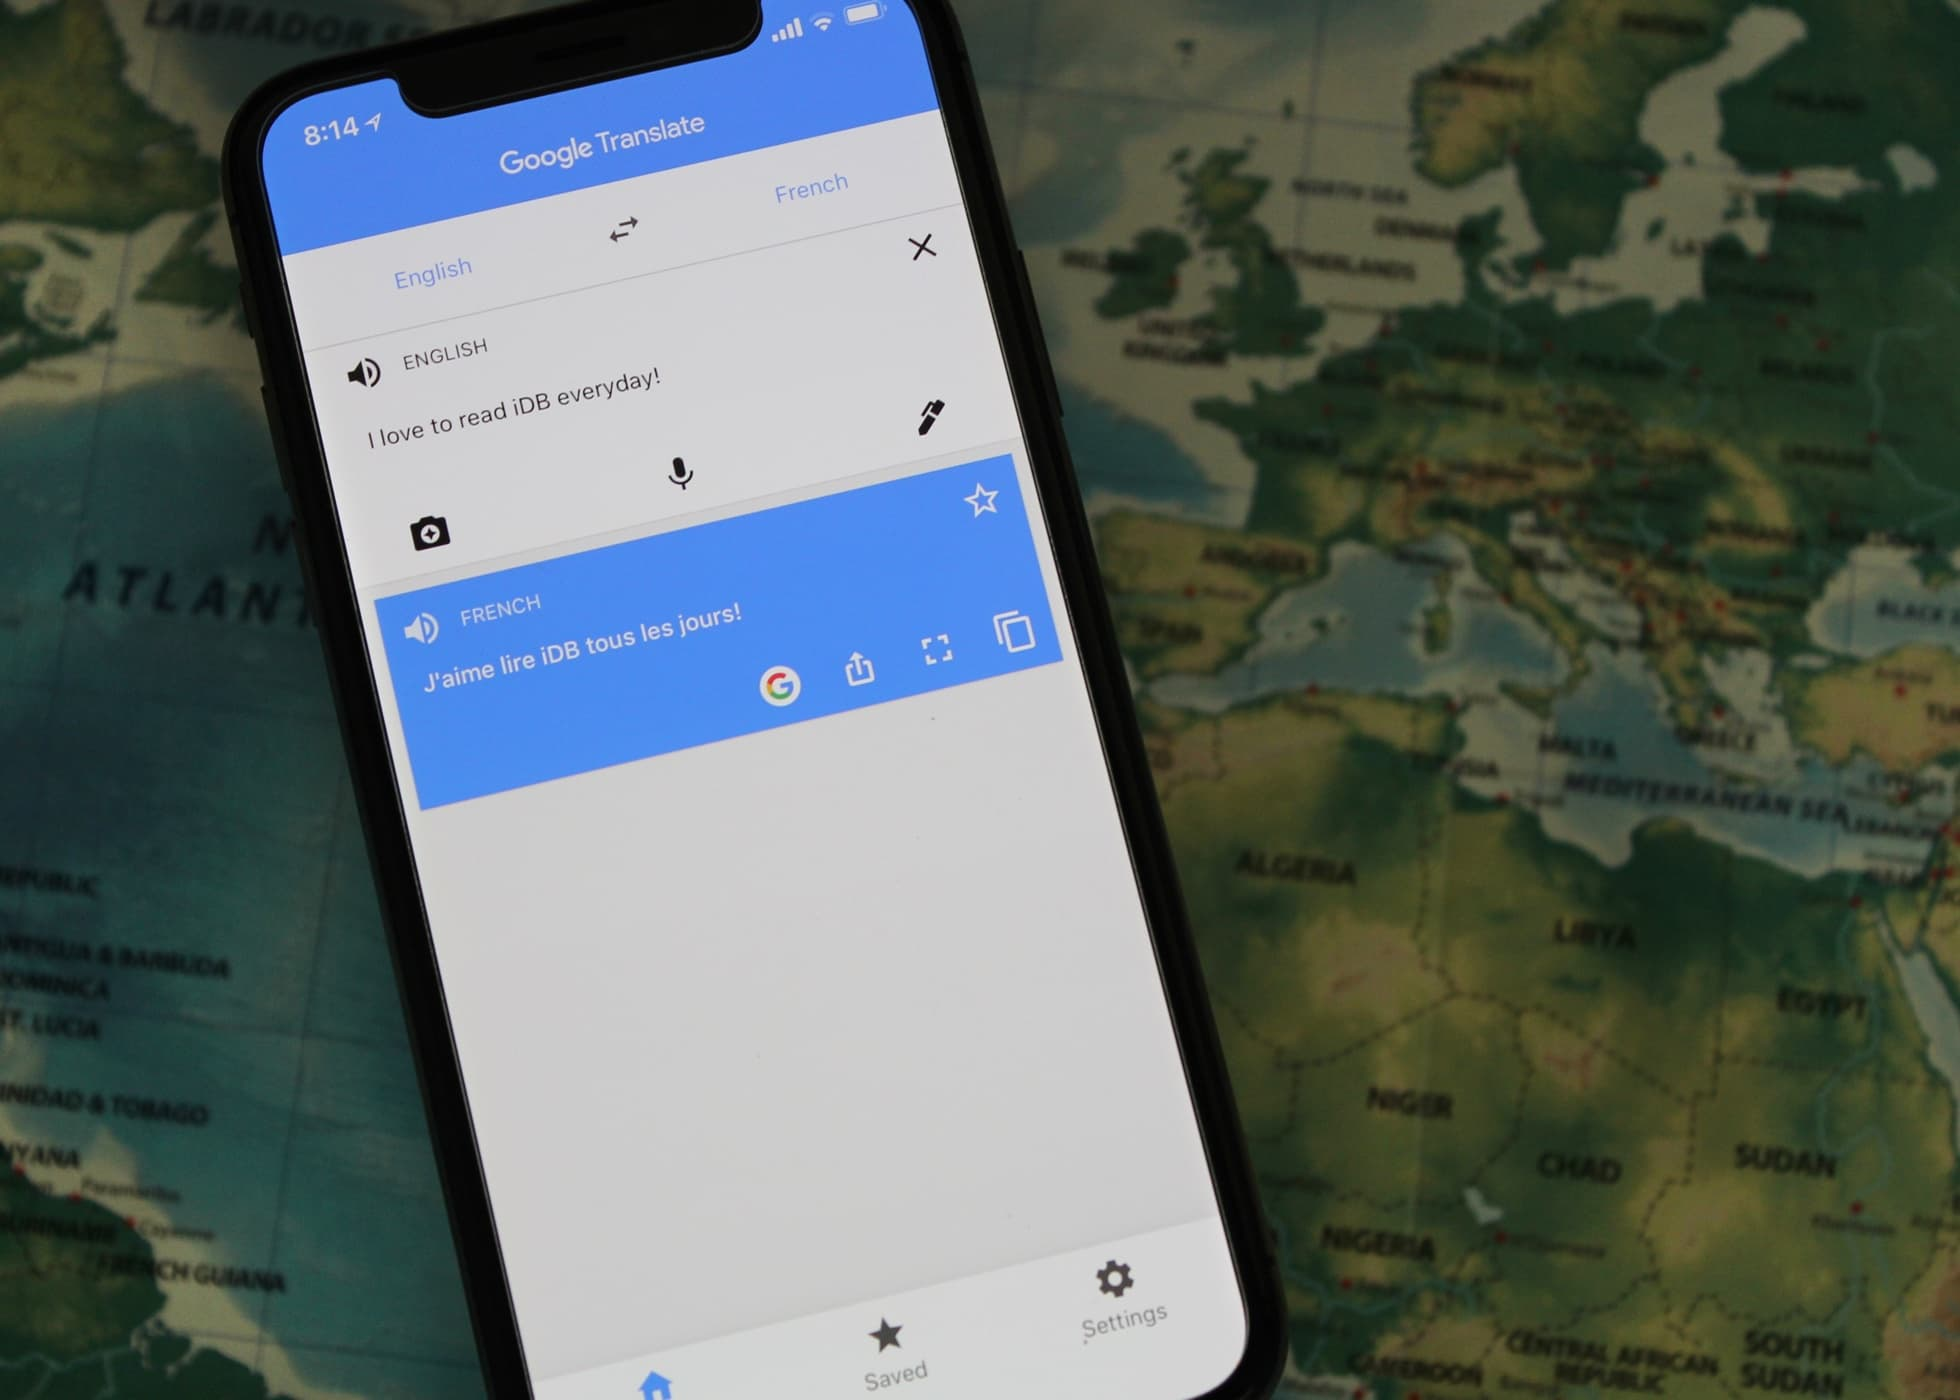 best translation apps iphone - Google Translate offers translations to 100+ languages